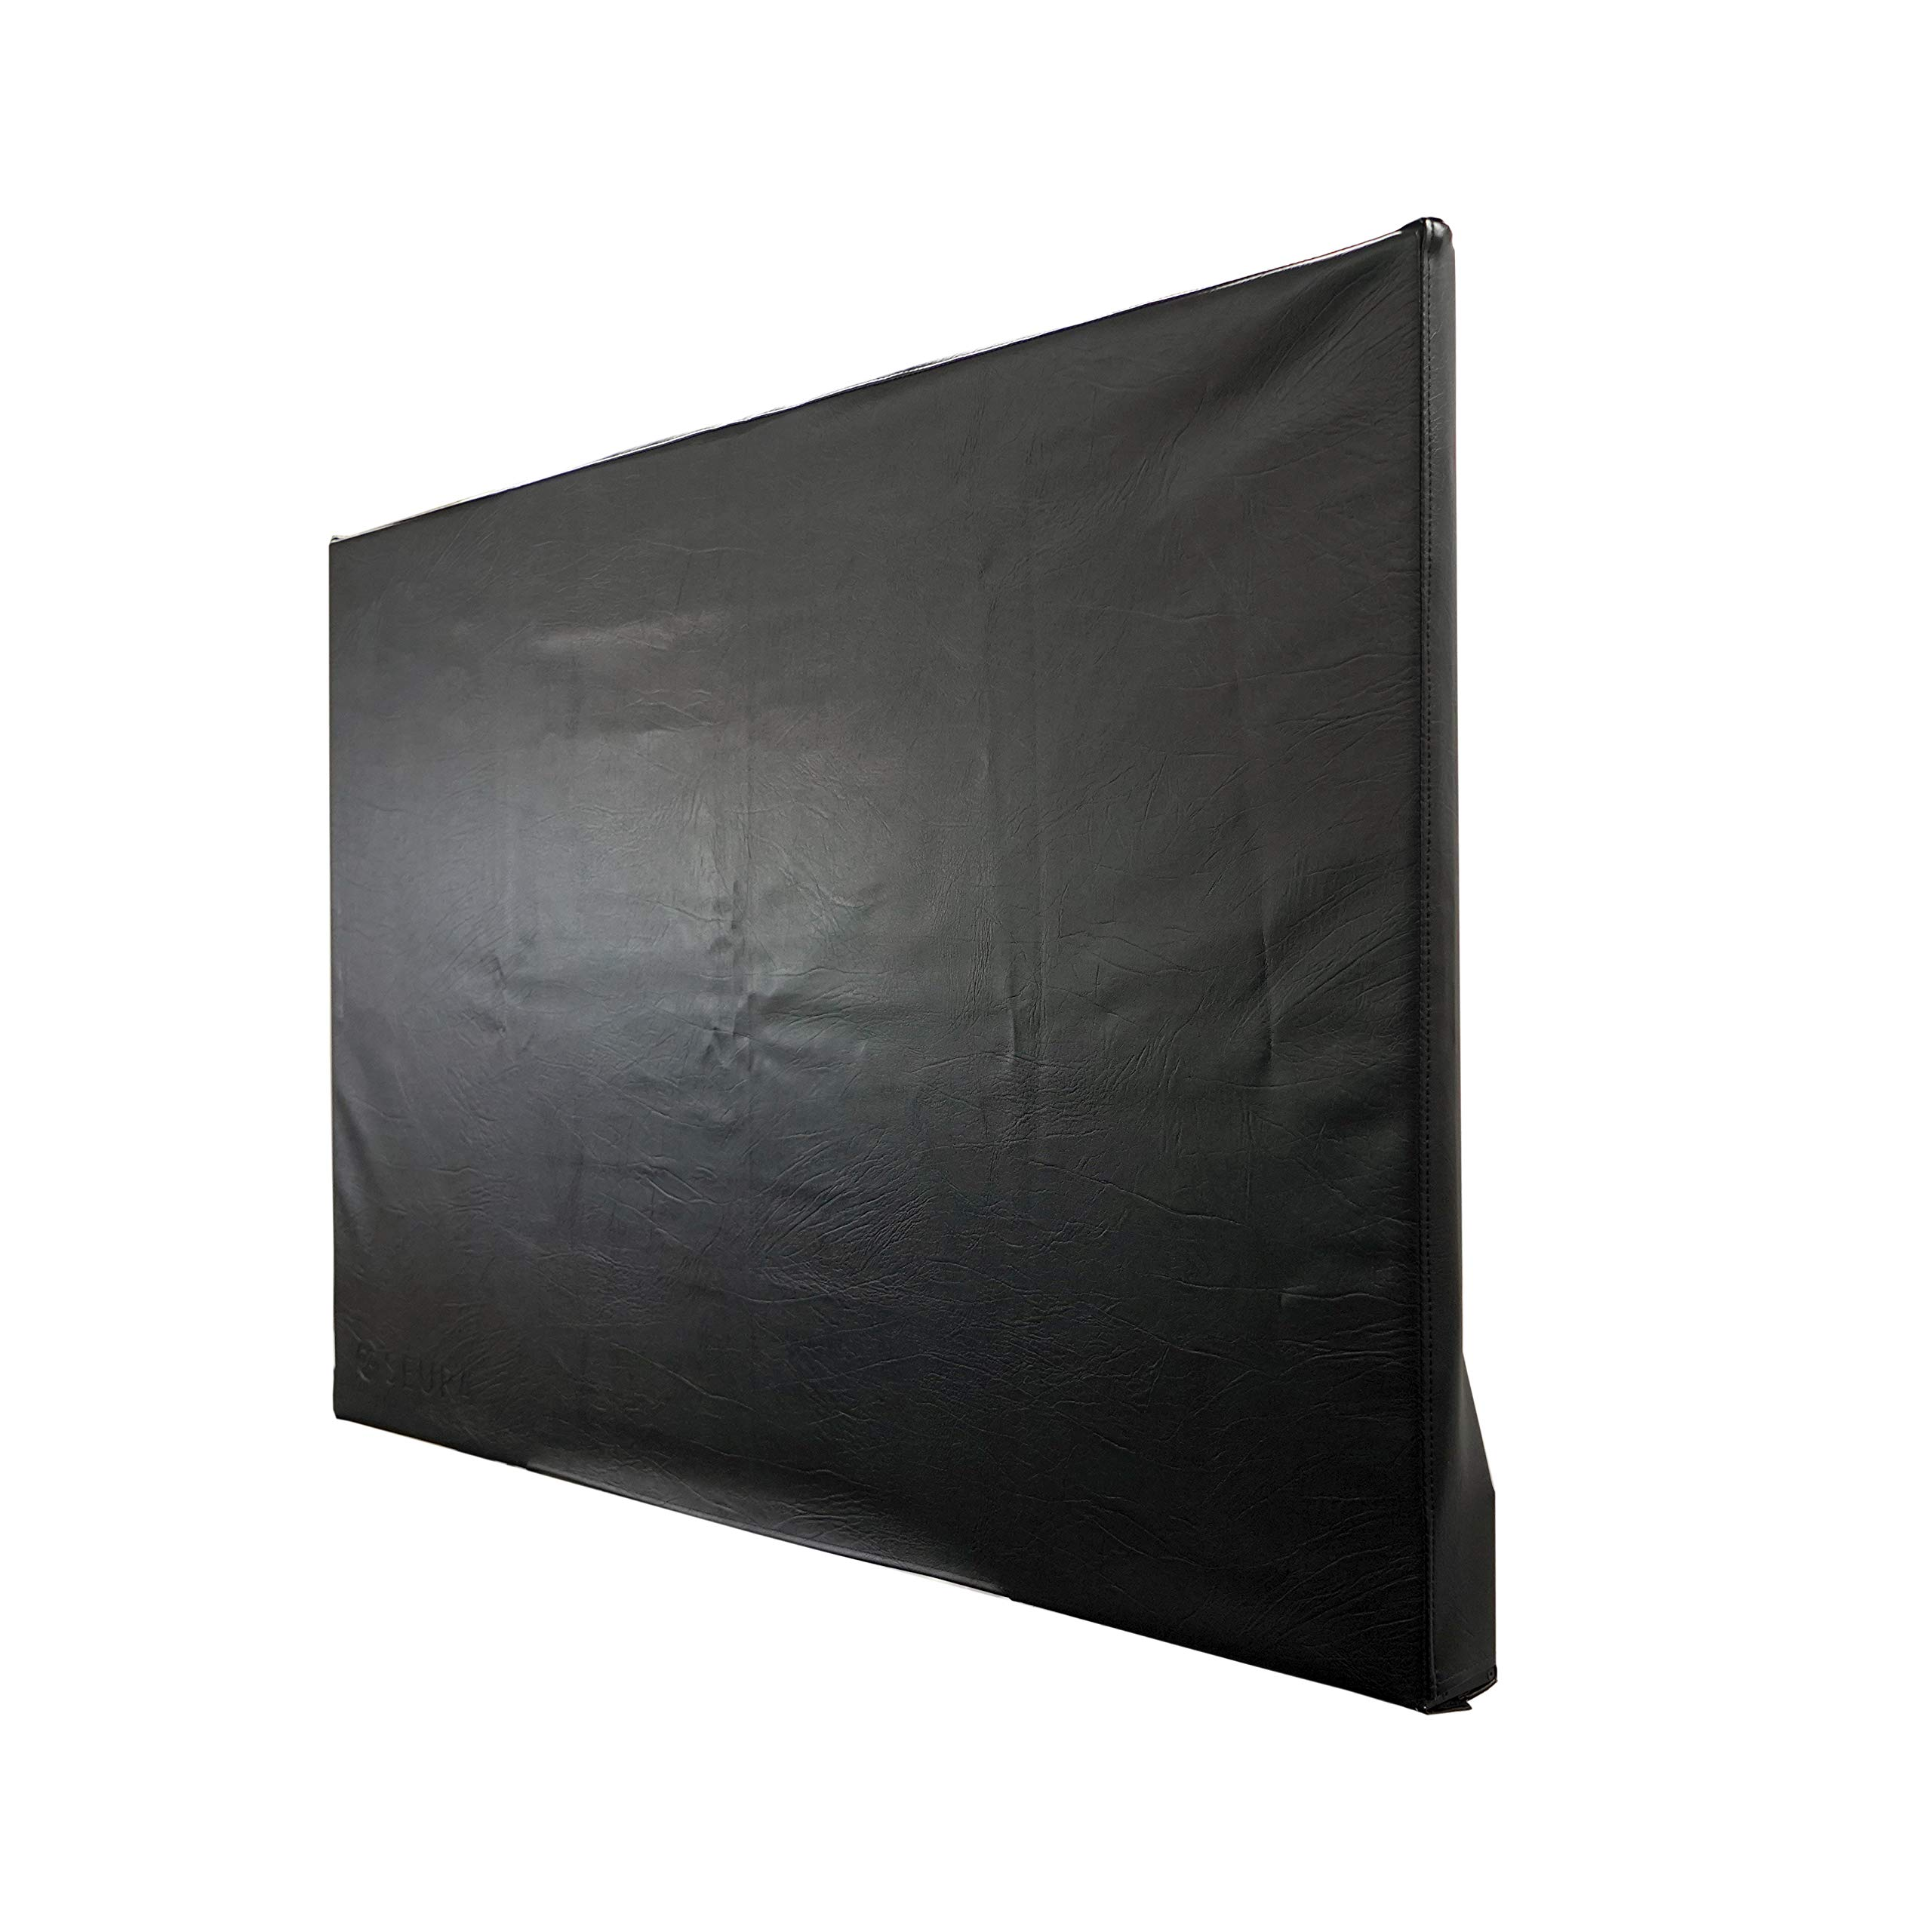 Séura Shade Series Outdoor TV Cover (for 55-inch Séura Shade Series TV with Soundbar) by Séura (Image #2)